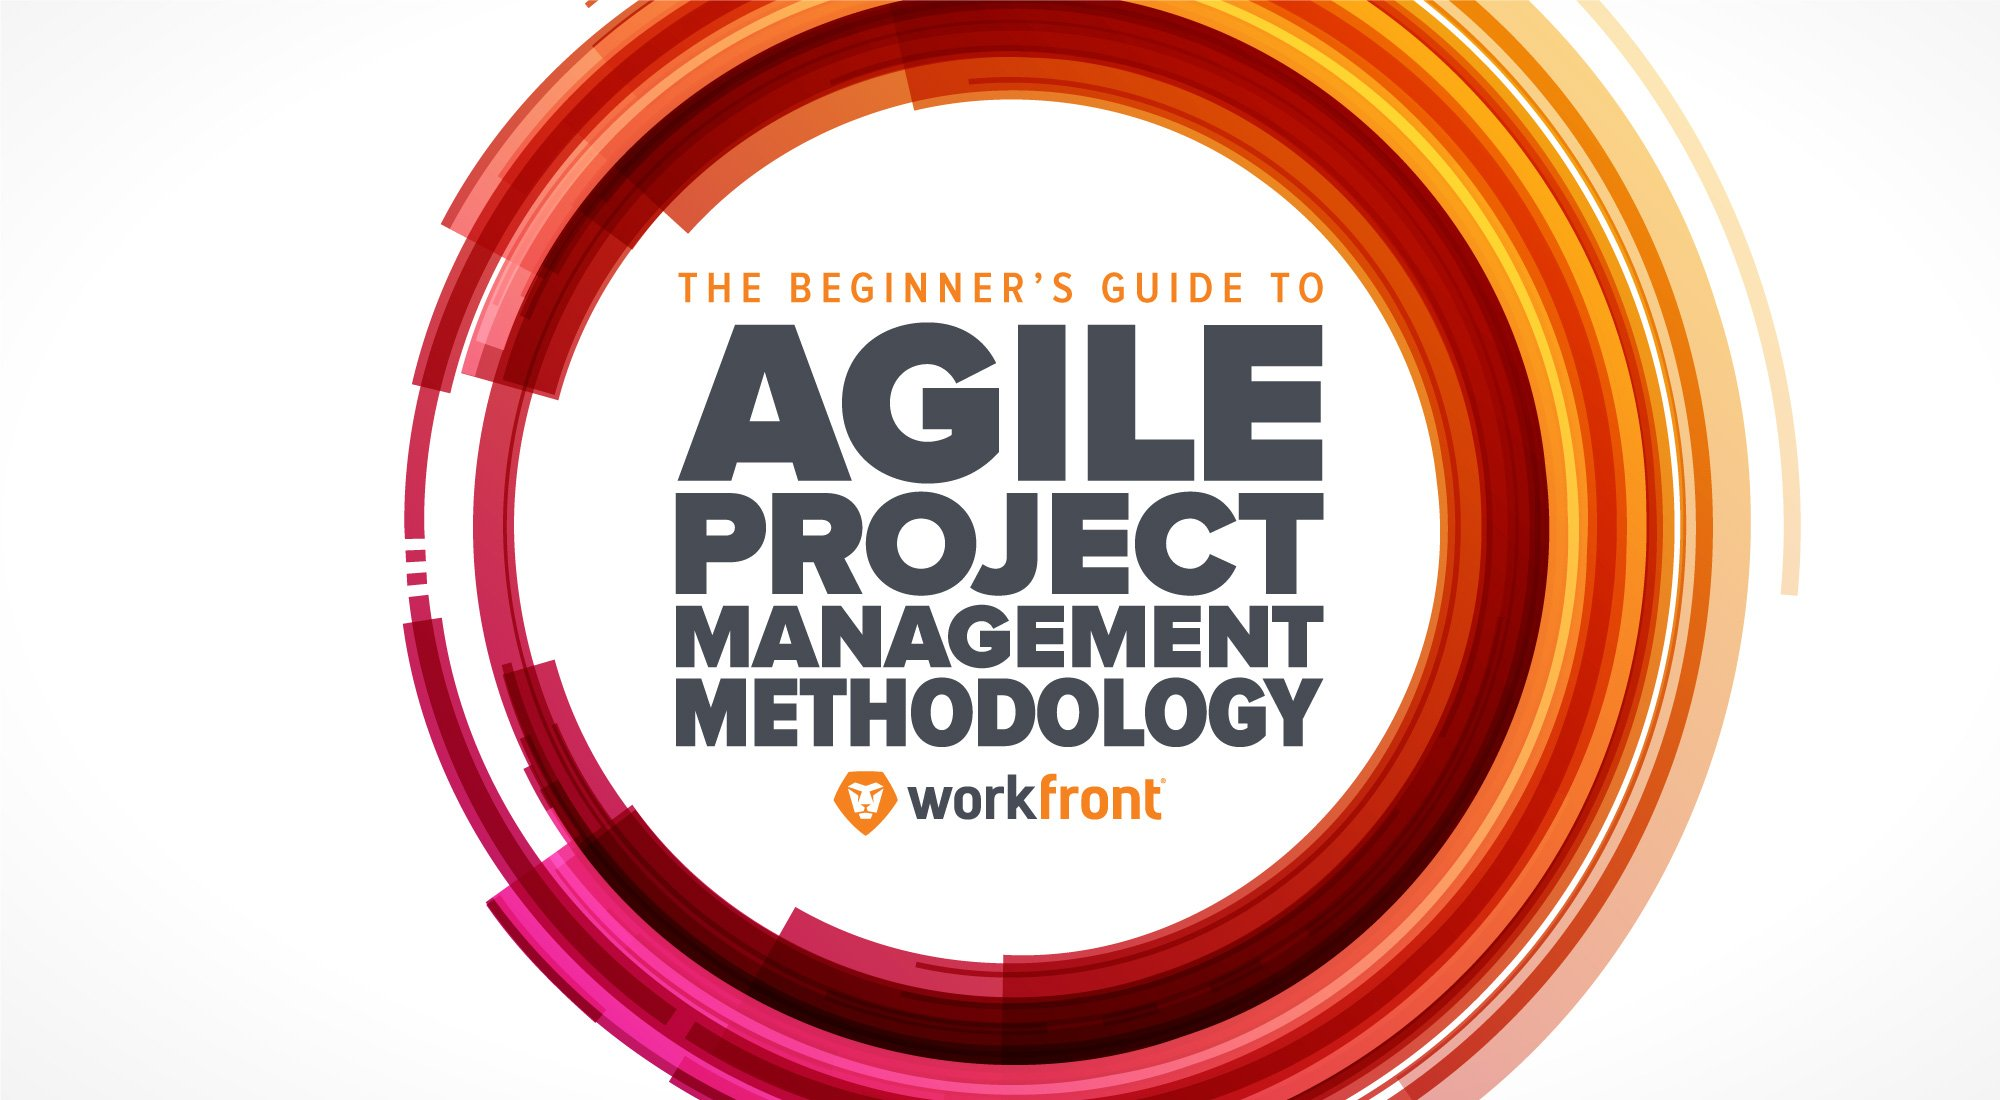 The Beginners Guide To Agile Project Management Methodology Workfront